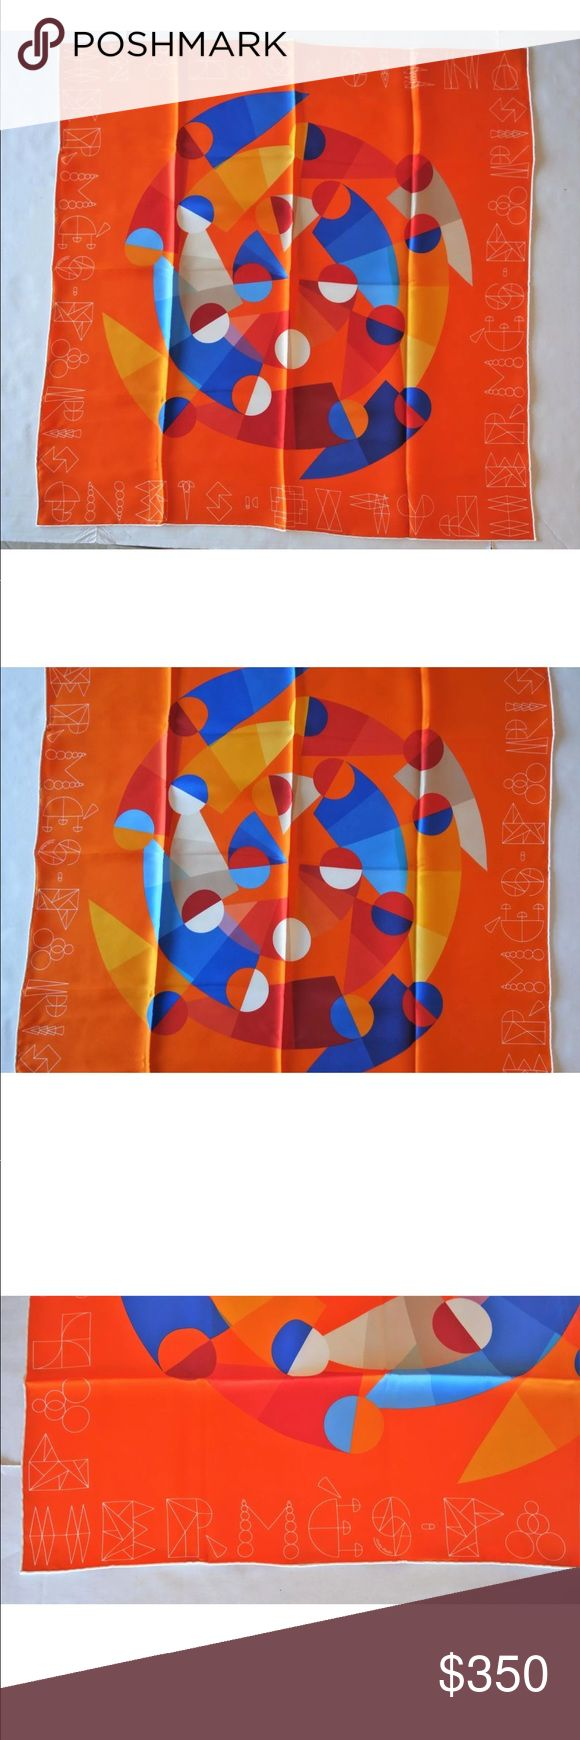 """HERMES 100% Silk Palio Di Siena Orange Scarf 70cm Designer: Hermes  Details: This is an Hermes 100% silk scarf in the style """"Palio di Siena"""" in orange/bleu/rouge.  It is size 70cm.  Made in France.  Comes with box.  Condition: Never worn, excellent condition. Hermes Accessories Scarves & Wraps"""